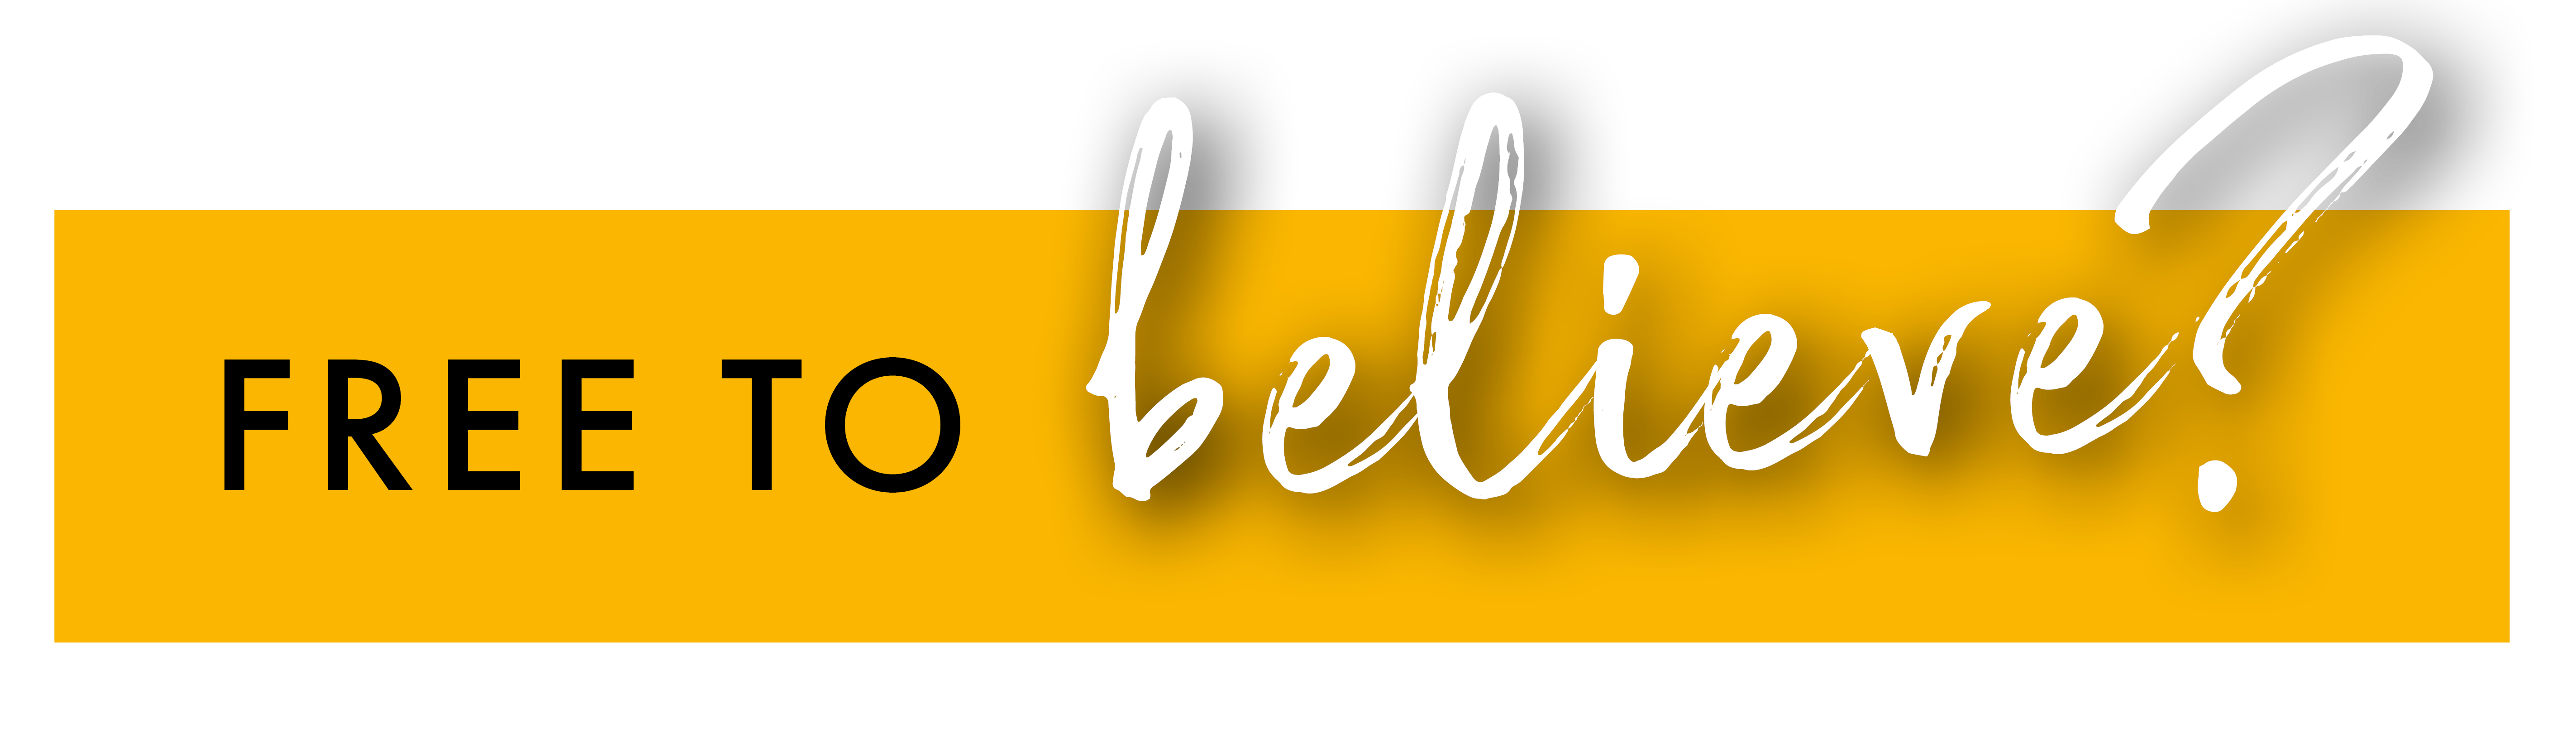 Free to believe banner